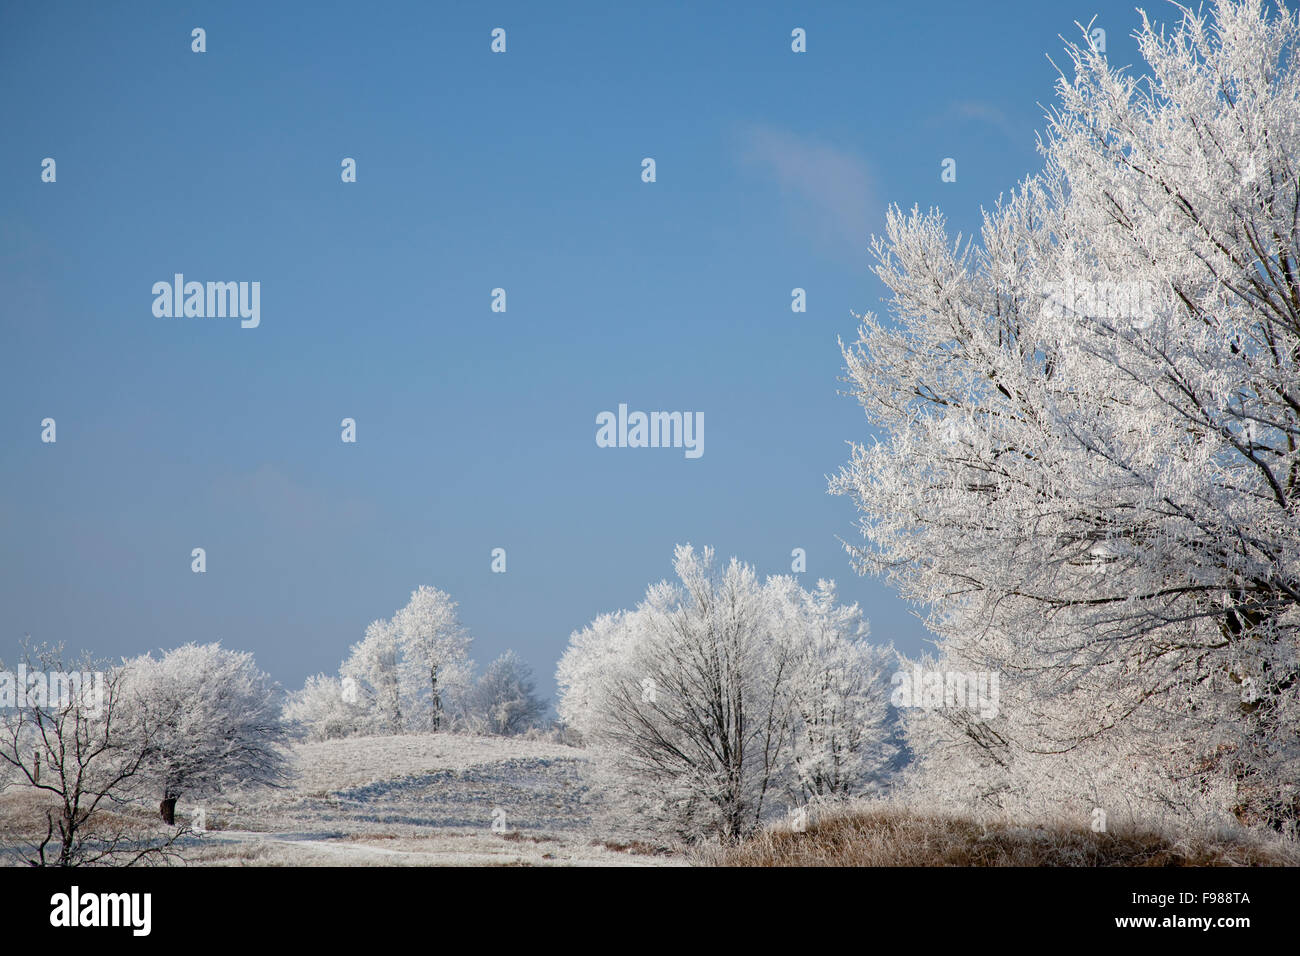 Paysage d'hiver Photo Stock